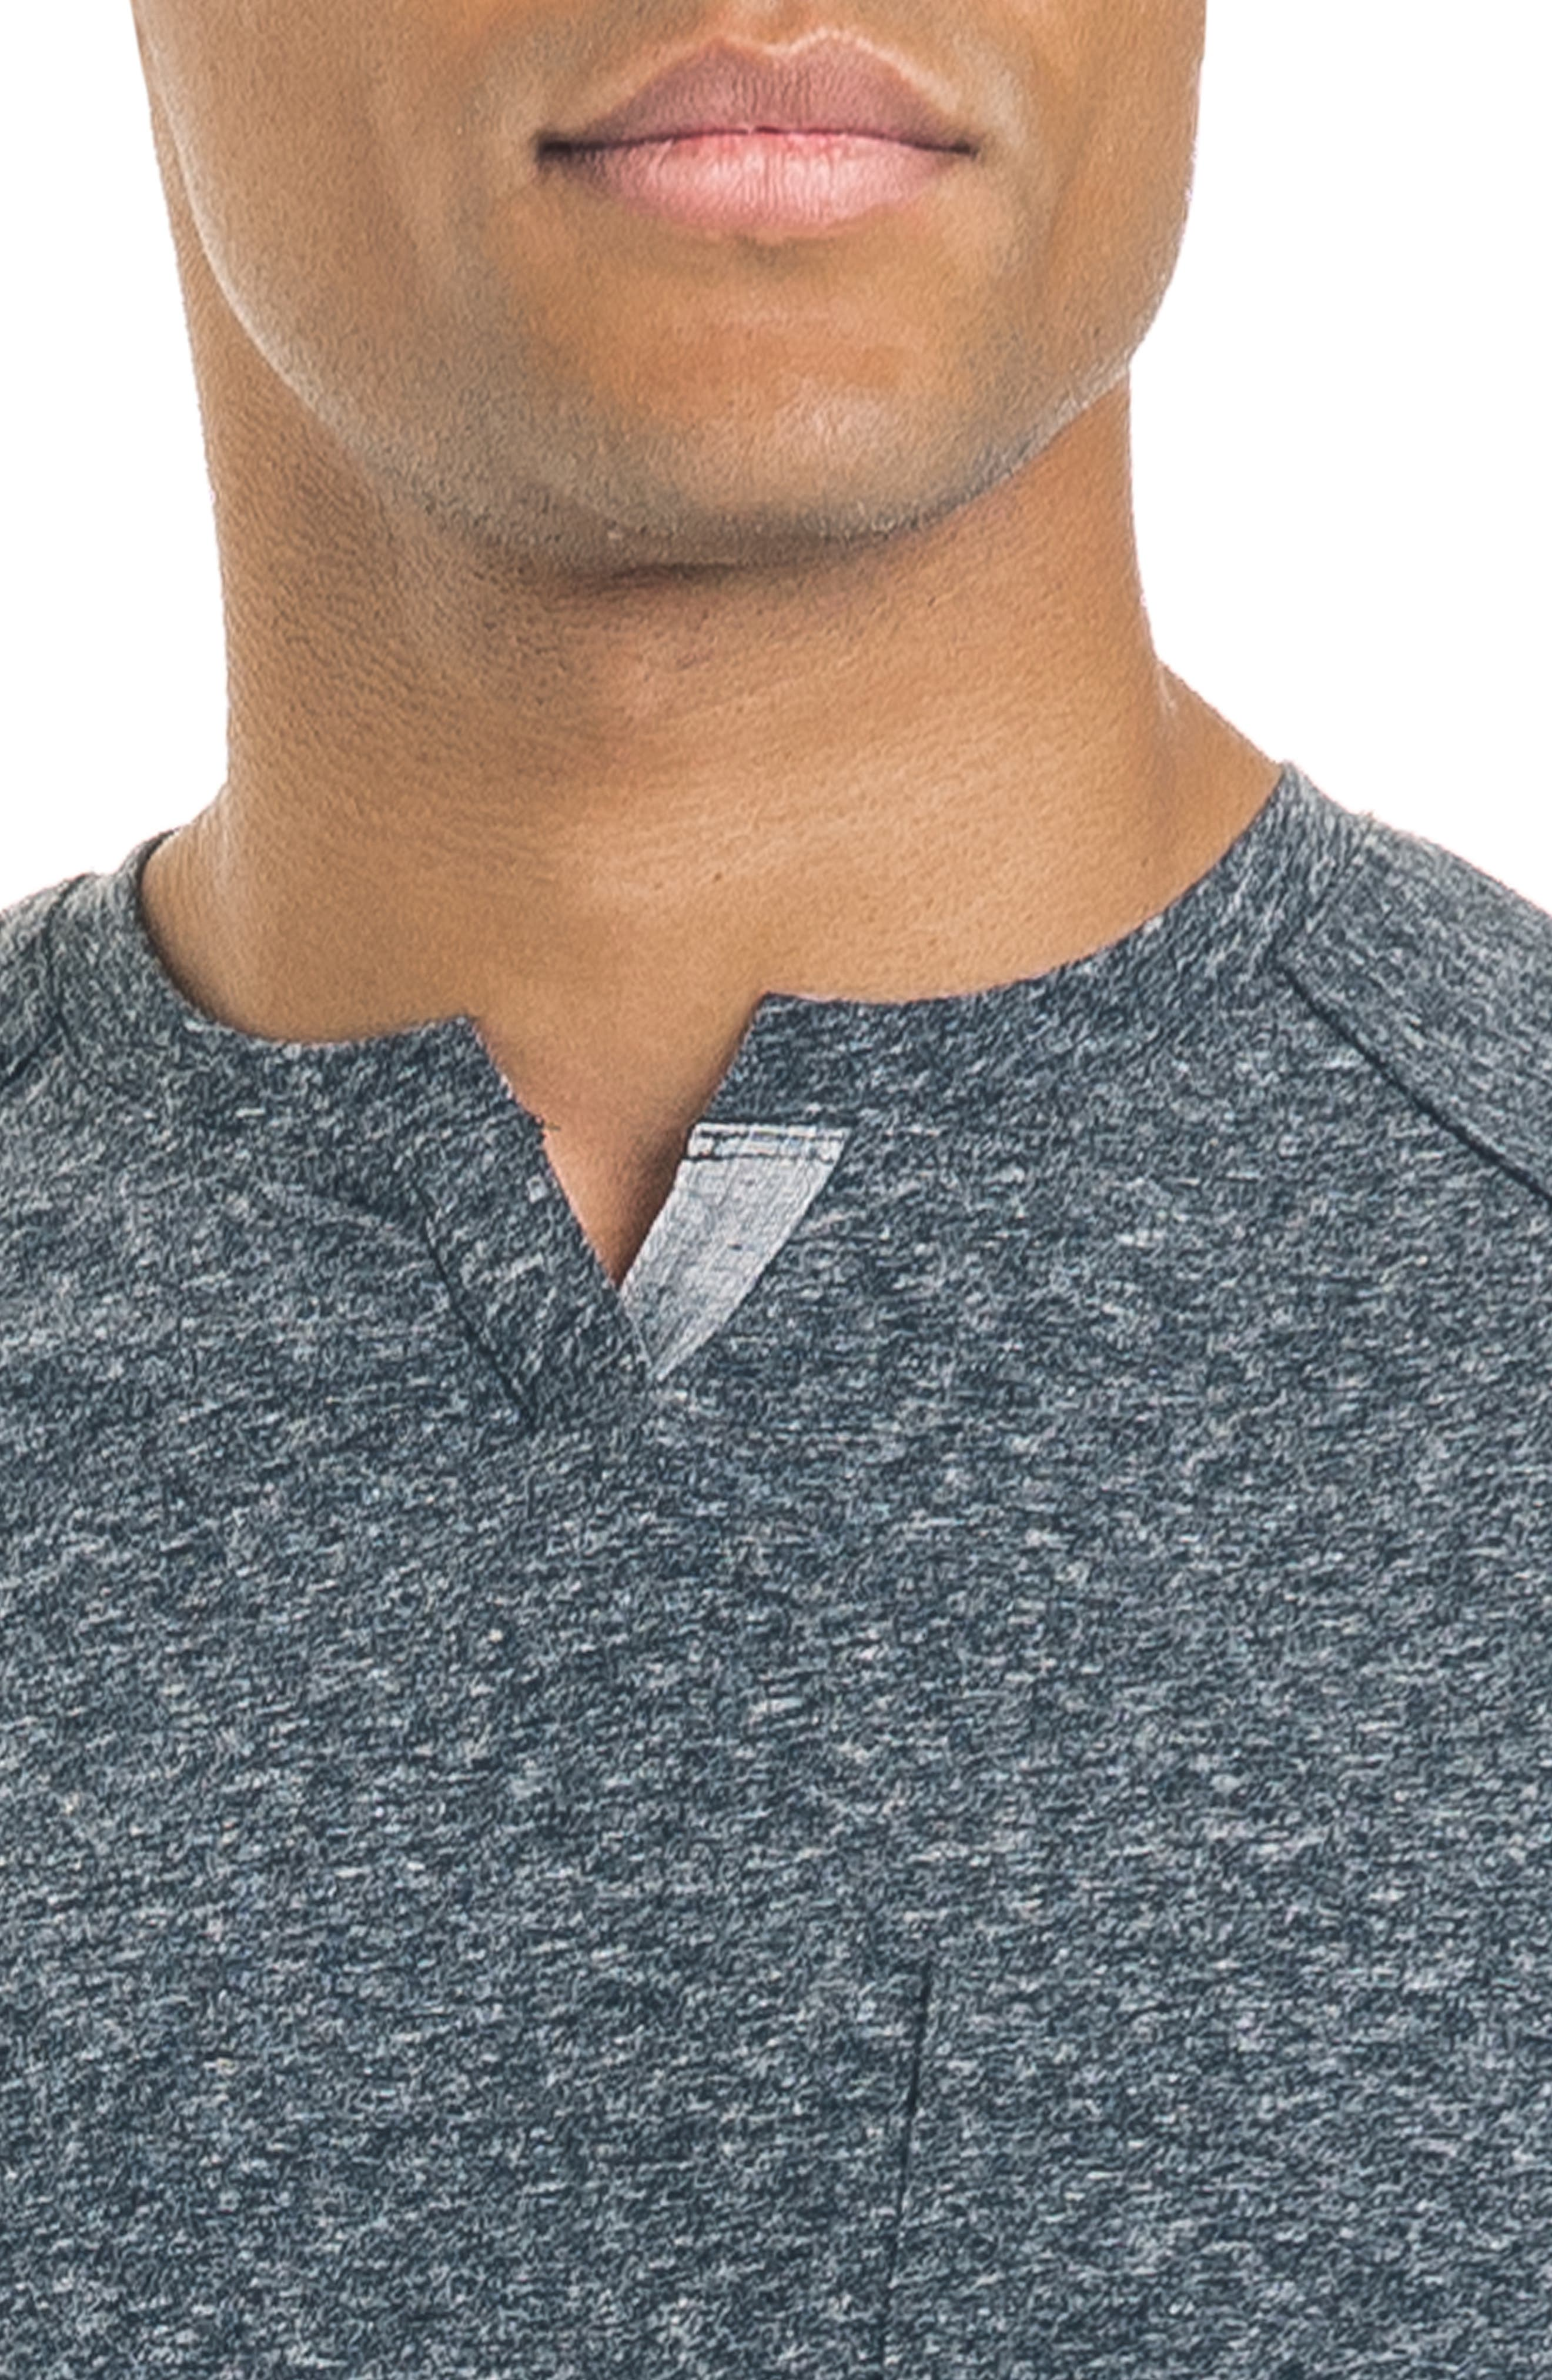 Slim Fit Notched Long Sleeve T-Shirt,                             Alternate thumbnail 4, color,                             CHARCOAL HEATHER